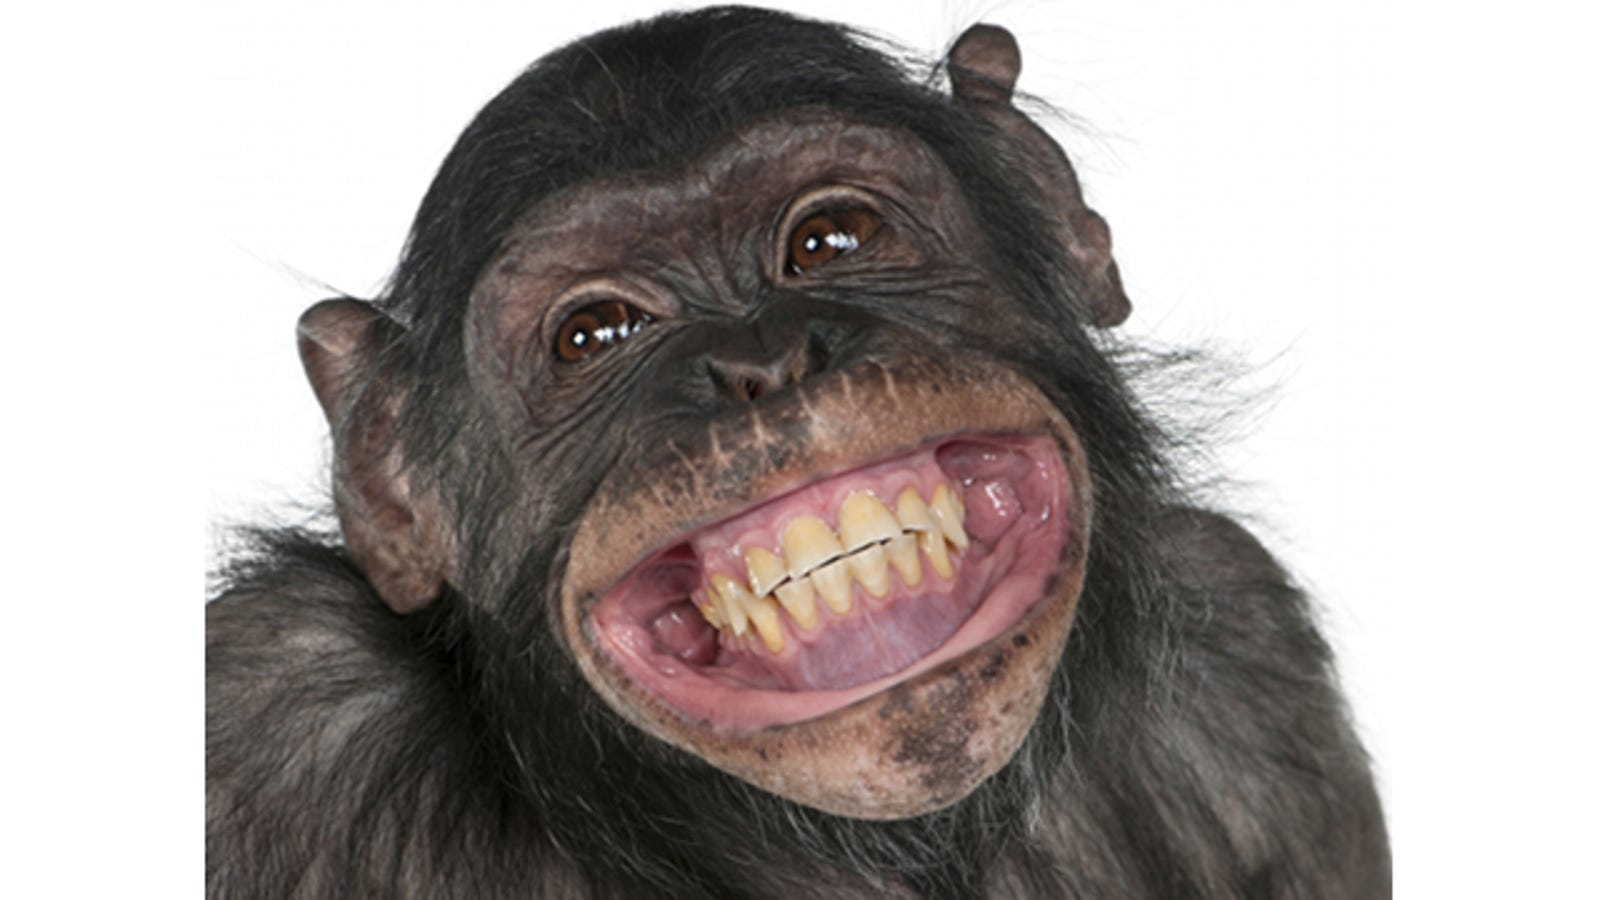 Proven The More Poop A Chimp Throws The Smarter It Is